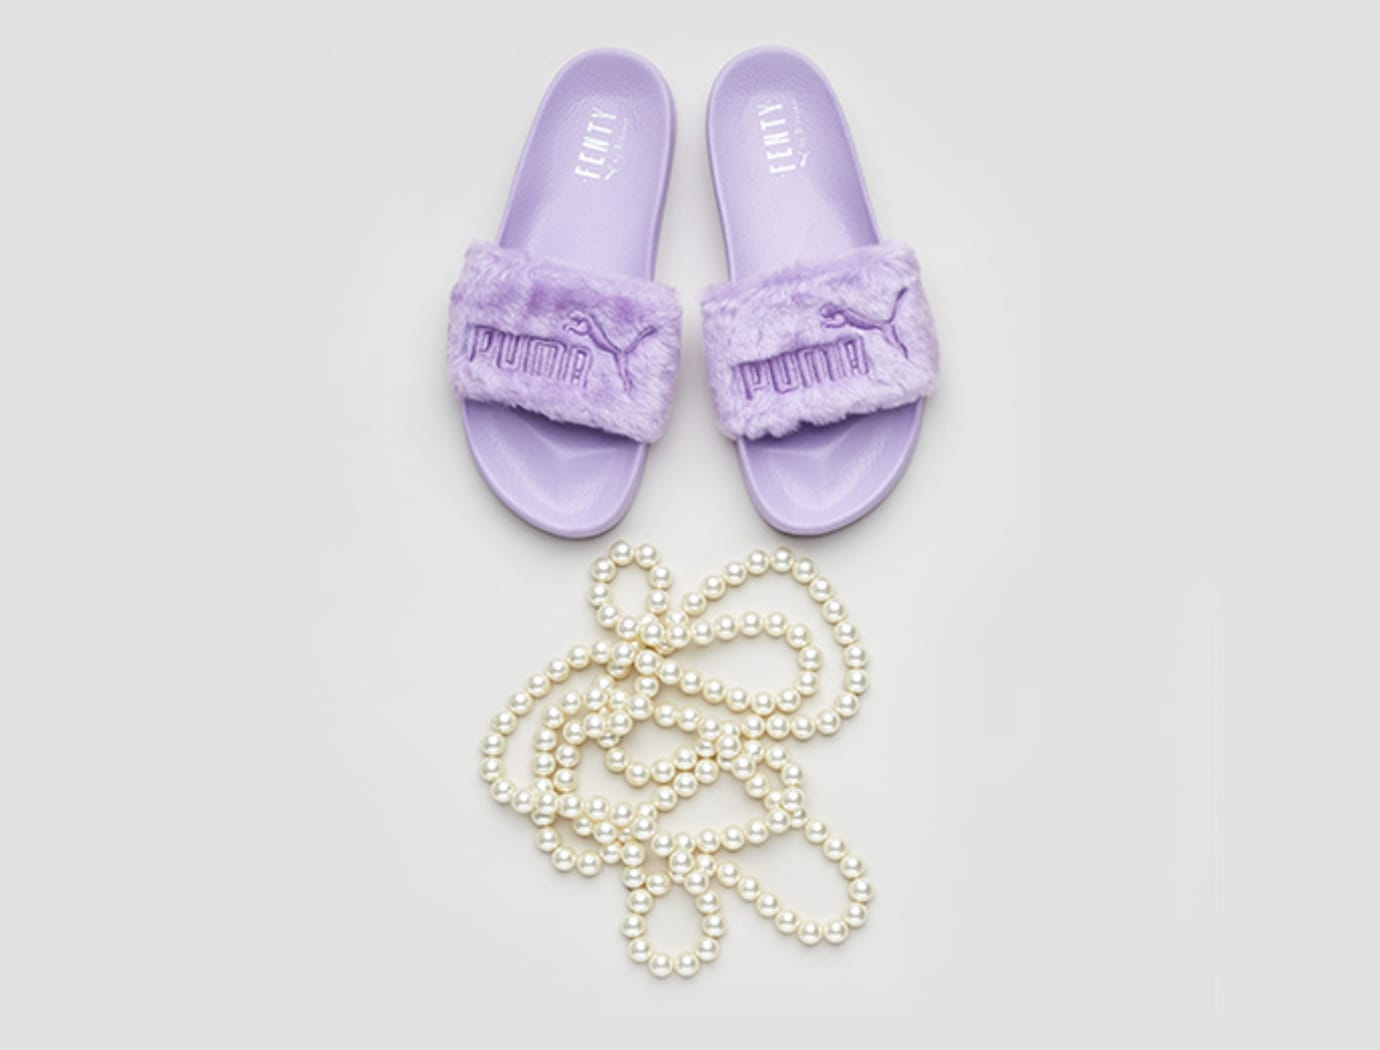 Puma x Fenty Fur Slide 'Orchid Bloom'